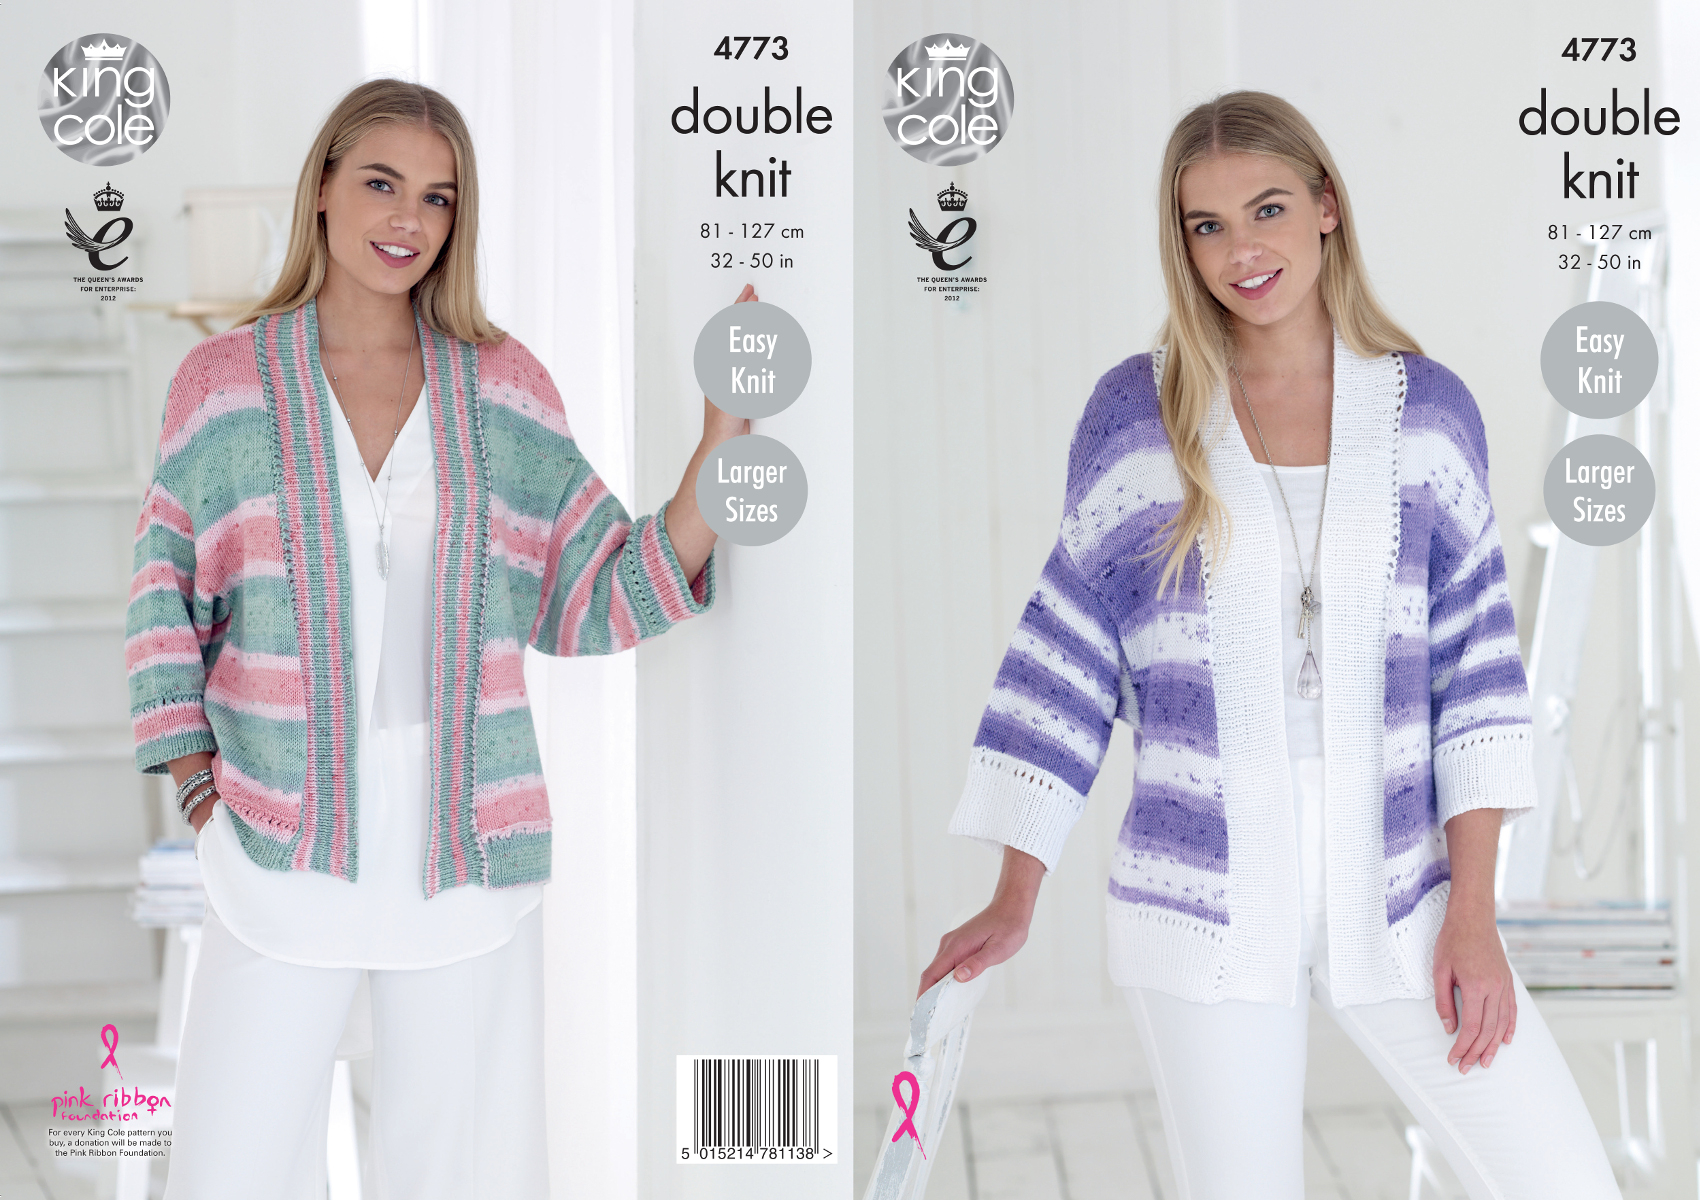 Kimono Sweater Knitting Pattern Details About King Cole Ladies Double Knitting Pattern Womens Easy Knit Kimono Cardigans 4773